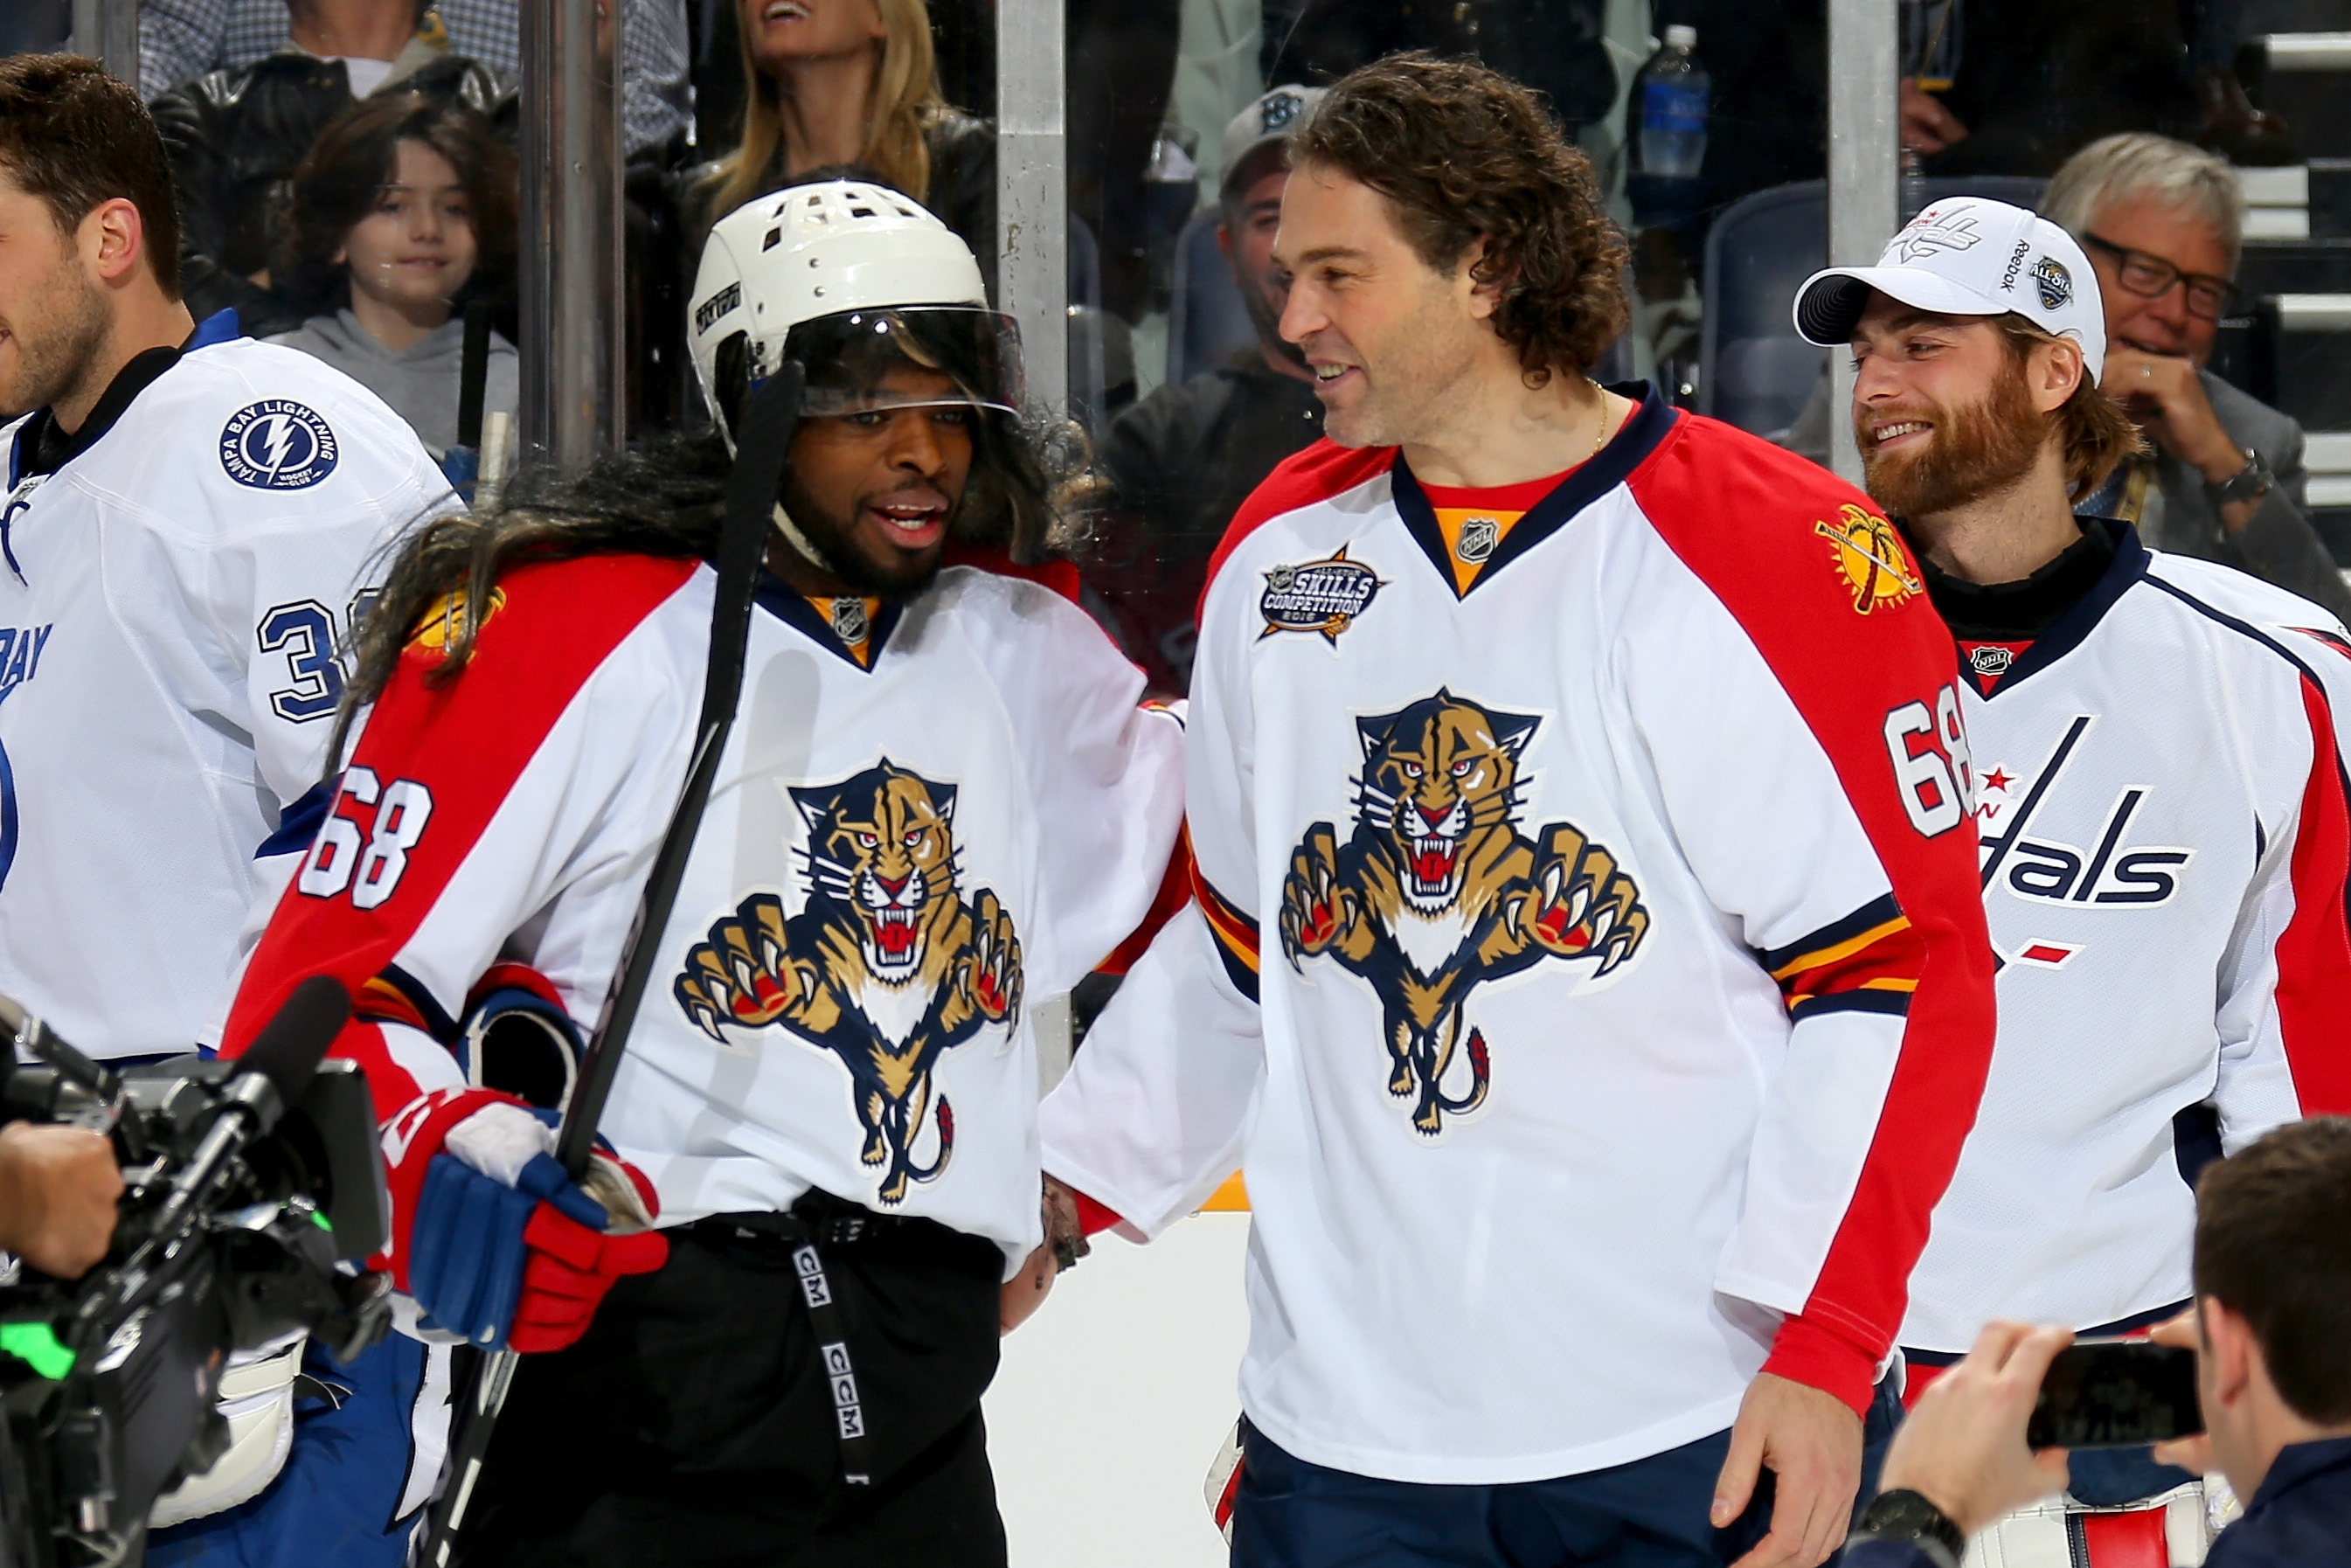 P.K. Subban of the Montreal Canadiens, left, donned a mullet wig and Jaromir Jagr jersey to pay tribute to the real Jagr, right, at the All-Star Skills Competition in Nashville Saturday.